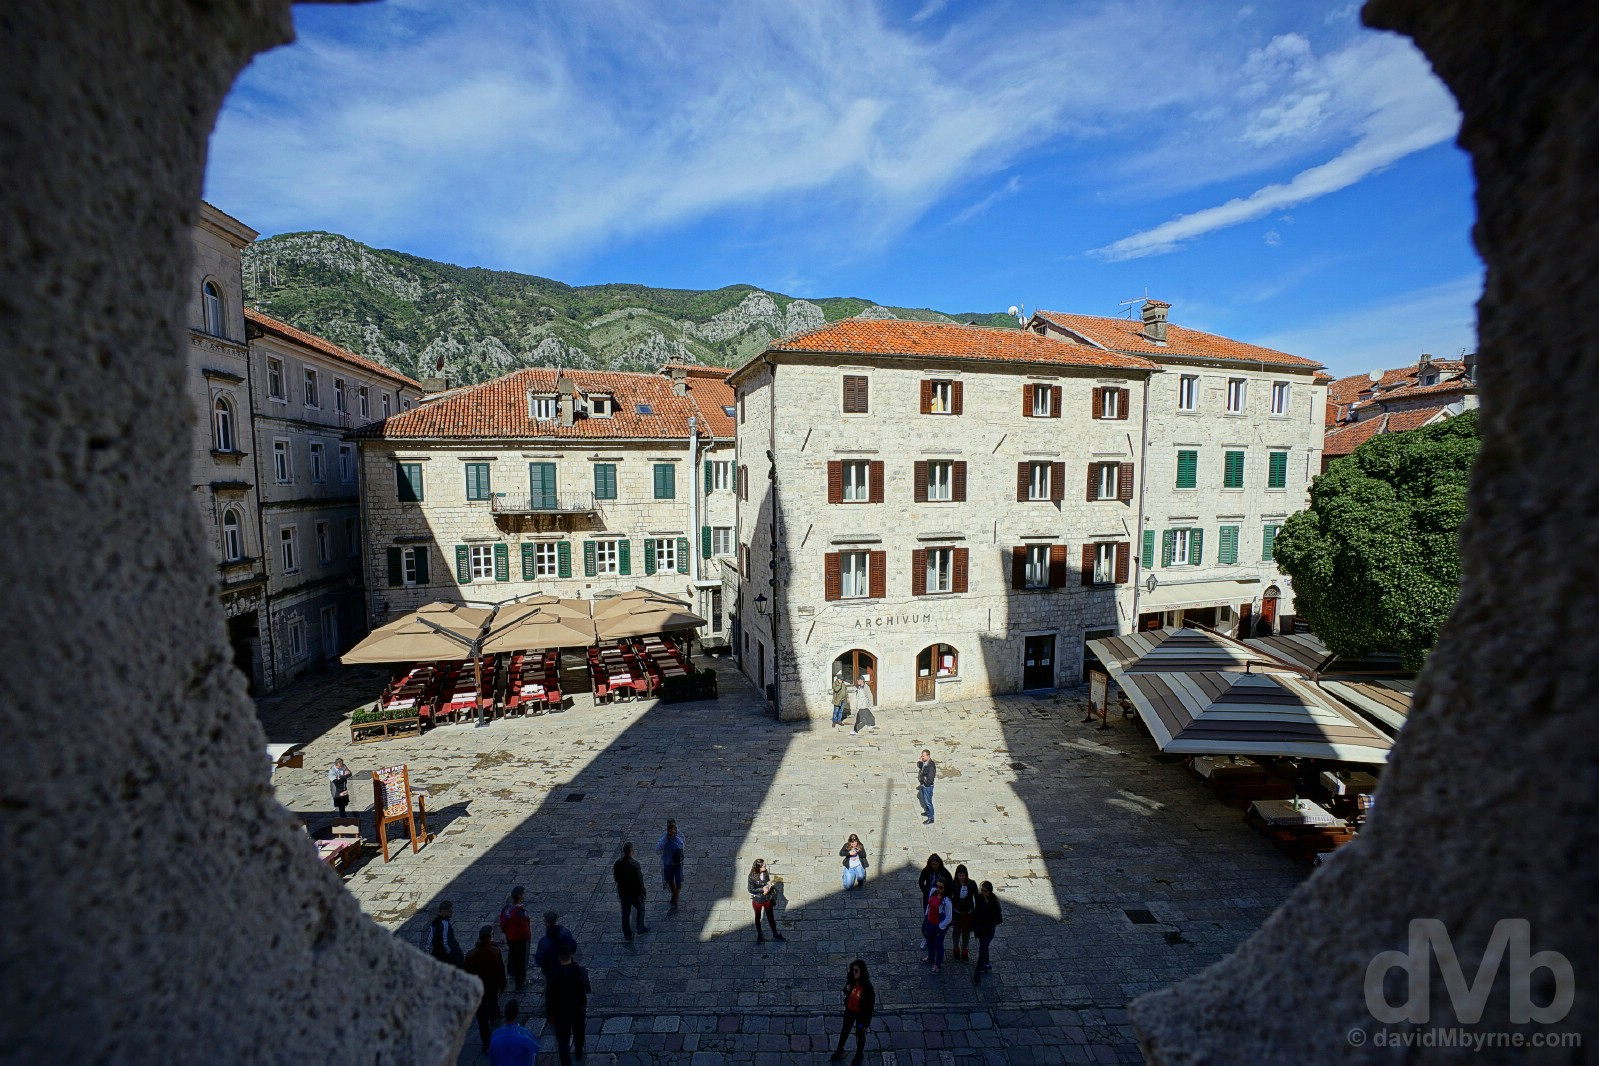 Trg sv. Tripuna (St. Tryphon's Square) as seen from the Cathedral of St. Tryphon, Stari Grad (Old Town), Kotor, Montenegro. April 20, 2017.